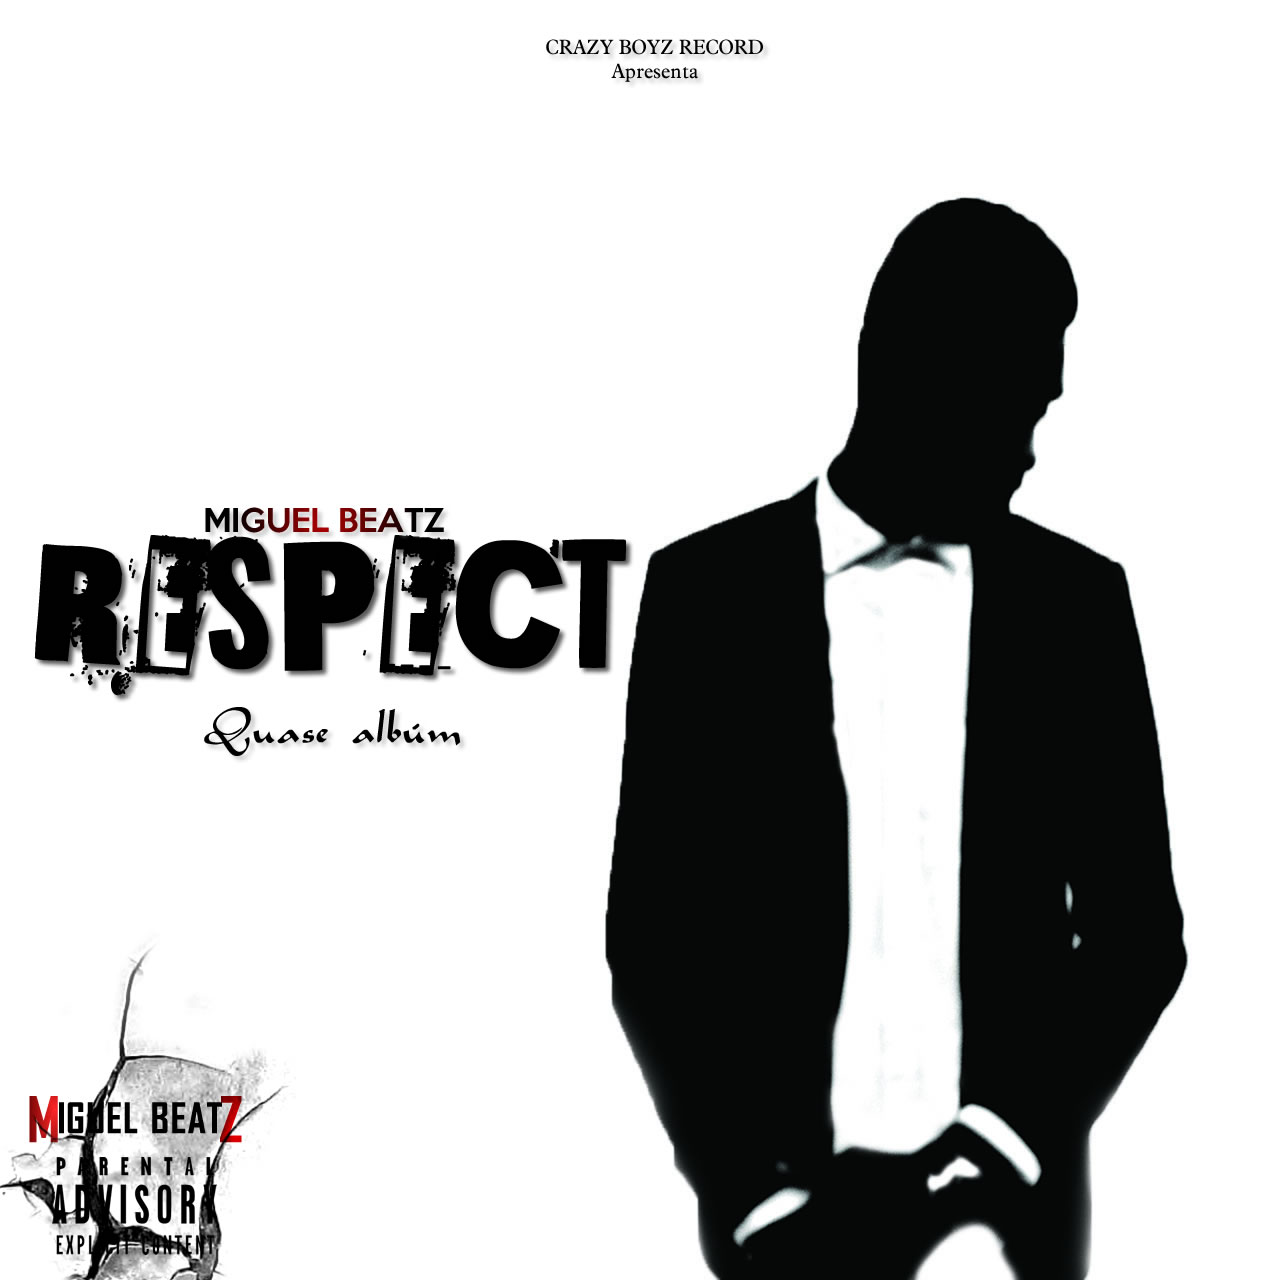 A Crazy Boyz Record Apresenta Miguel Beatz - Respect - [Mixtape] Download